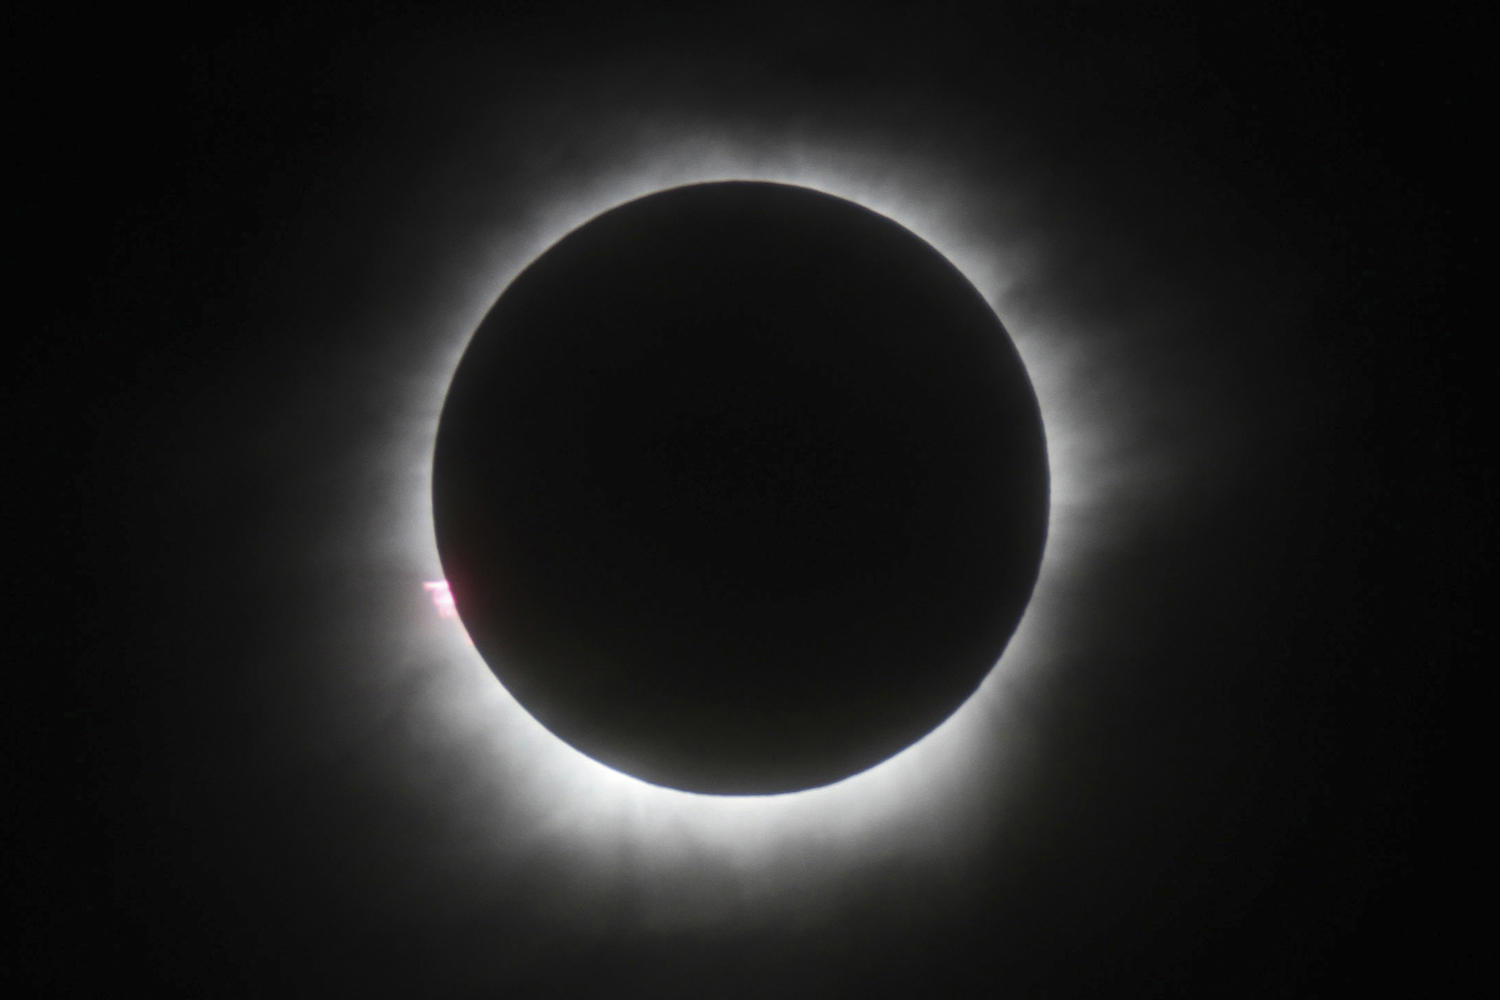 Partial eclipse can cause eye damage, doctor says